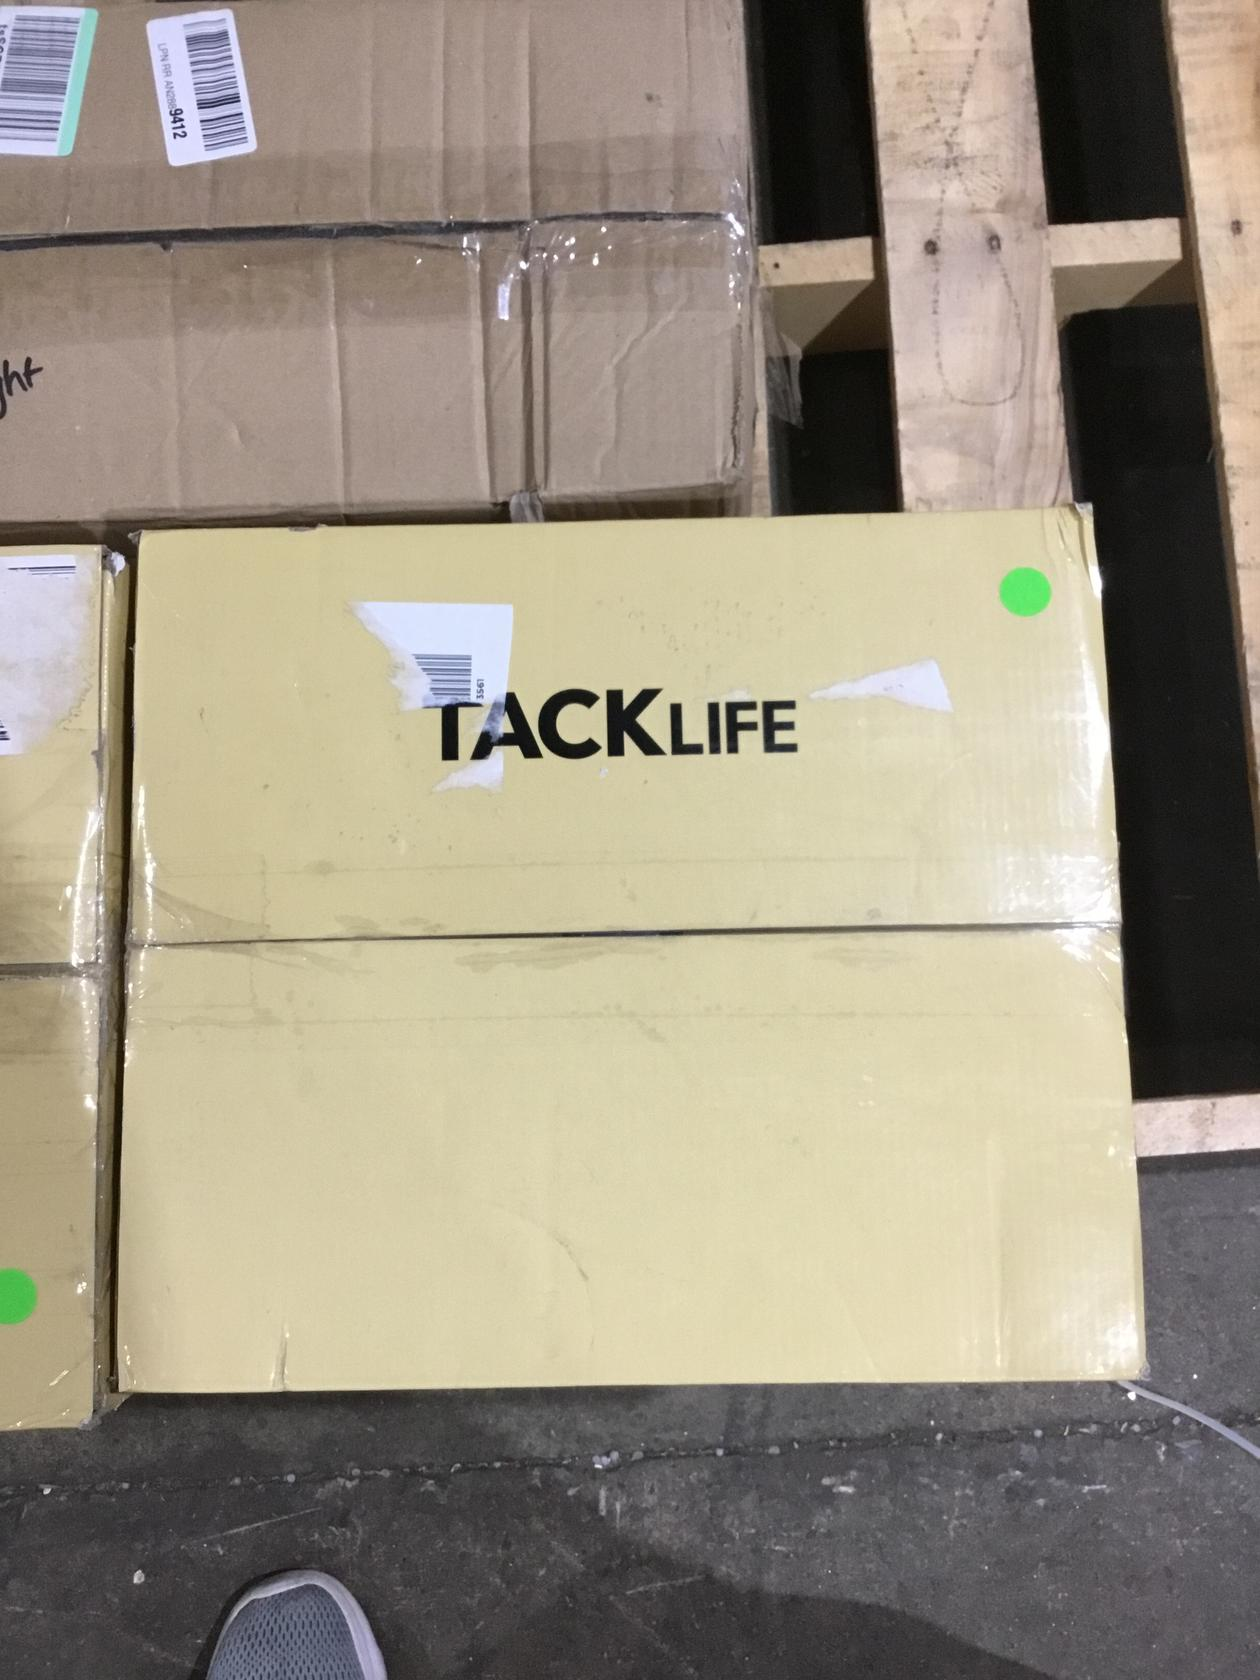 TACKLIFE Money Counter, Bill Counting Machine with UV/MG/IR Detection, Counterfeit Bill Detection, Batch Mode, 1,000 Notes Per Minute, LED Display - Doesn't Count Value of Bills MMC01